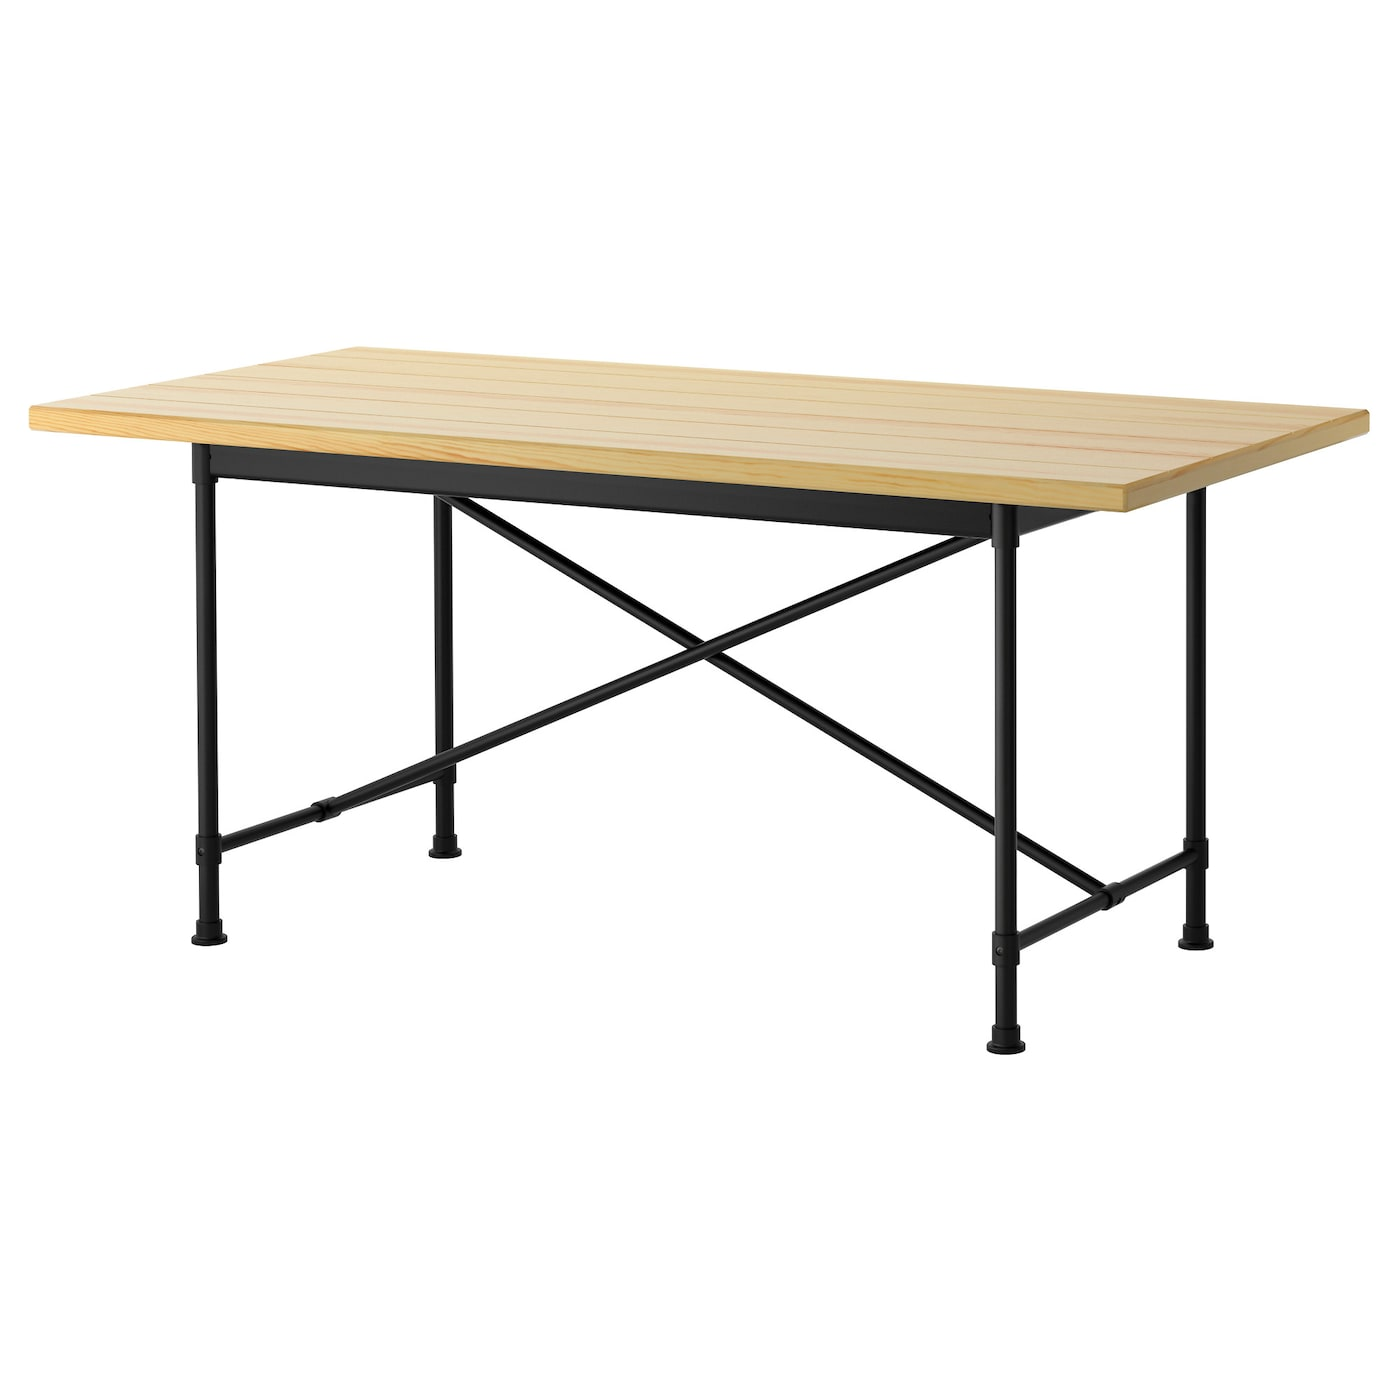 Ryggestad table pine karpalund black 170x78 cm ikea for Pine desk ikea